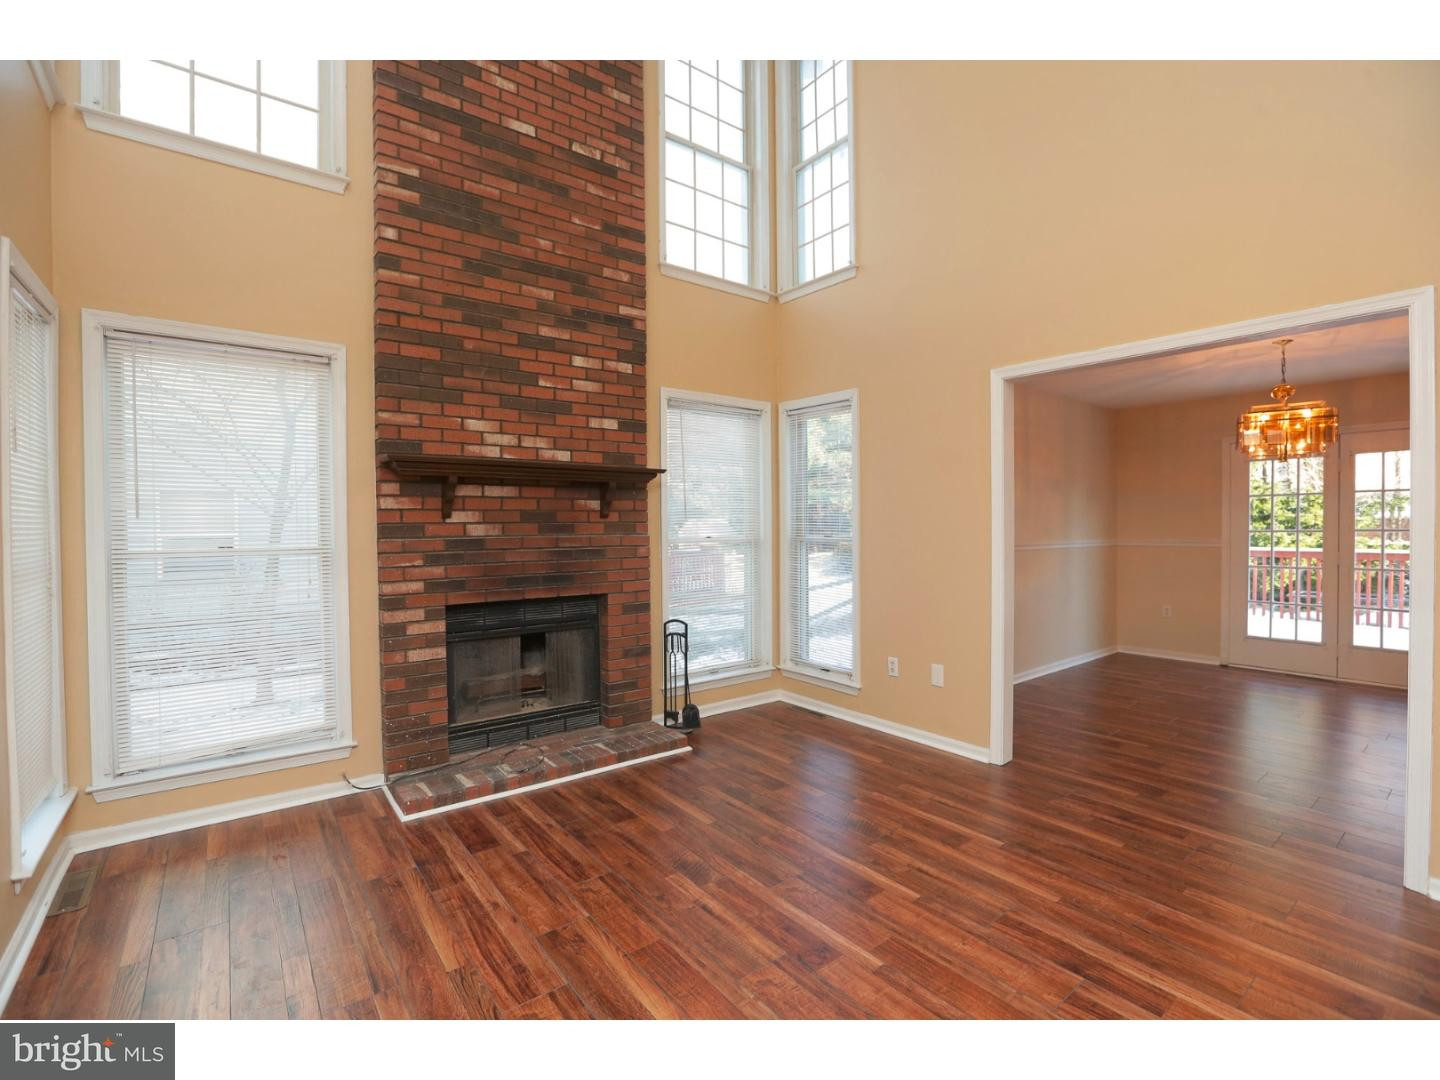 Hardwood Flooring New Haven Ct Of 232 orchard Dr north Wales Pa 19454 Mls 1004322293 Coldwell Banker Intended for original